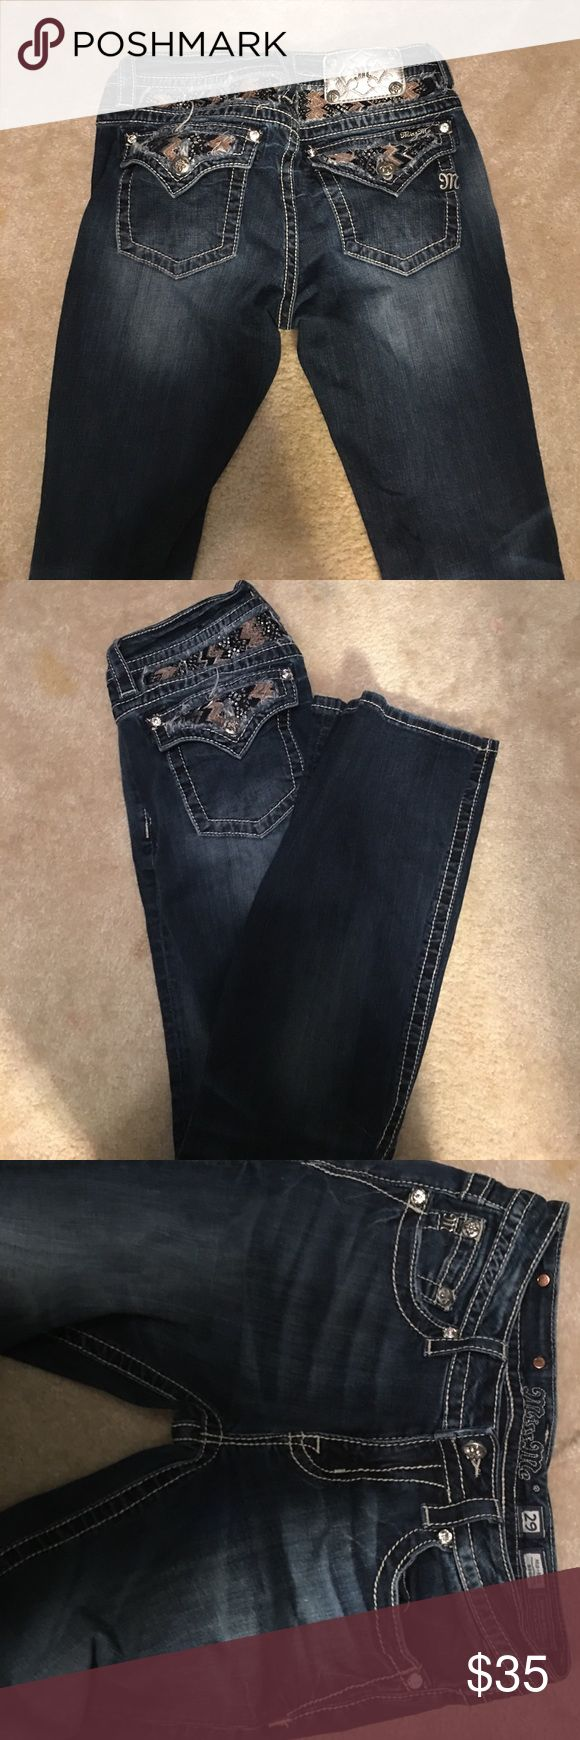 Miss mes boot cut jeans Dark washed jeans size 29 Miss Me Jeans Boot Cut